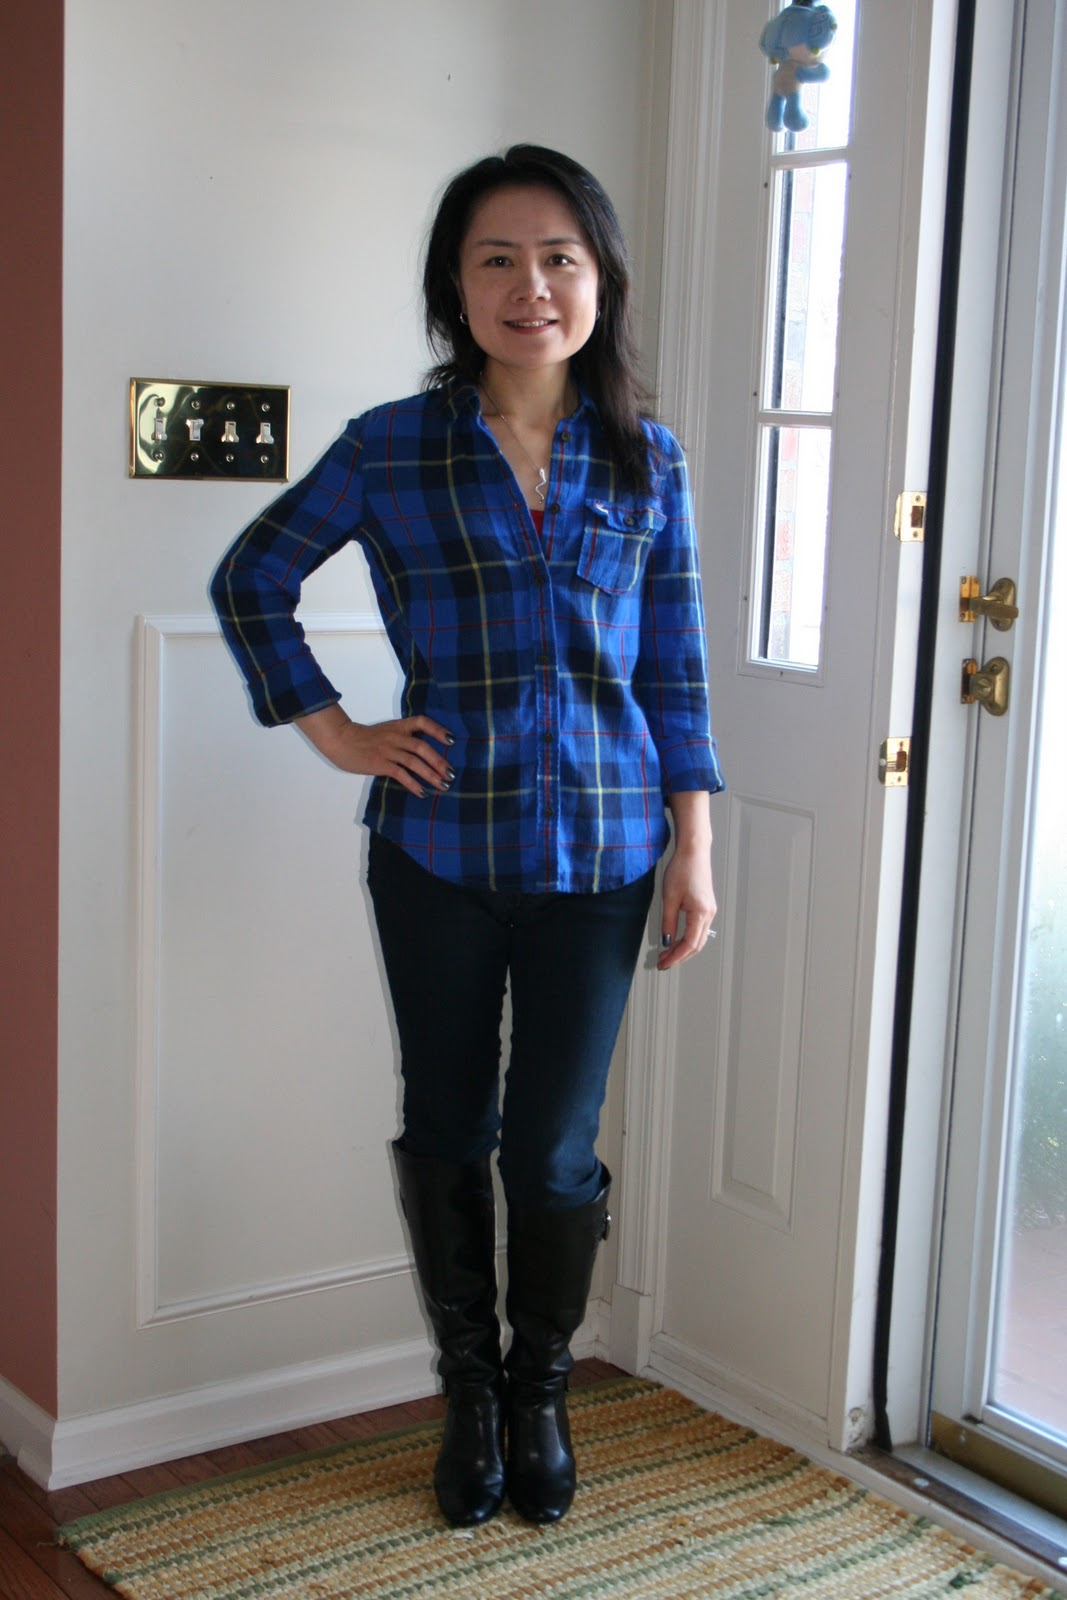 Flannel Sweater Dress with Boots